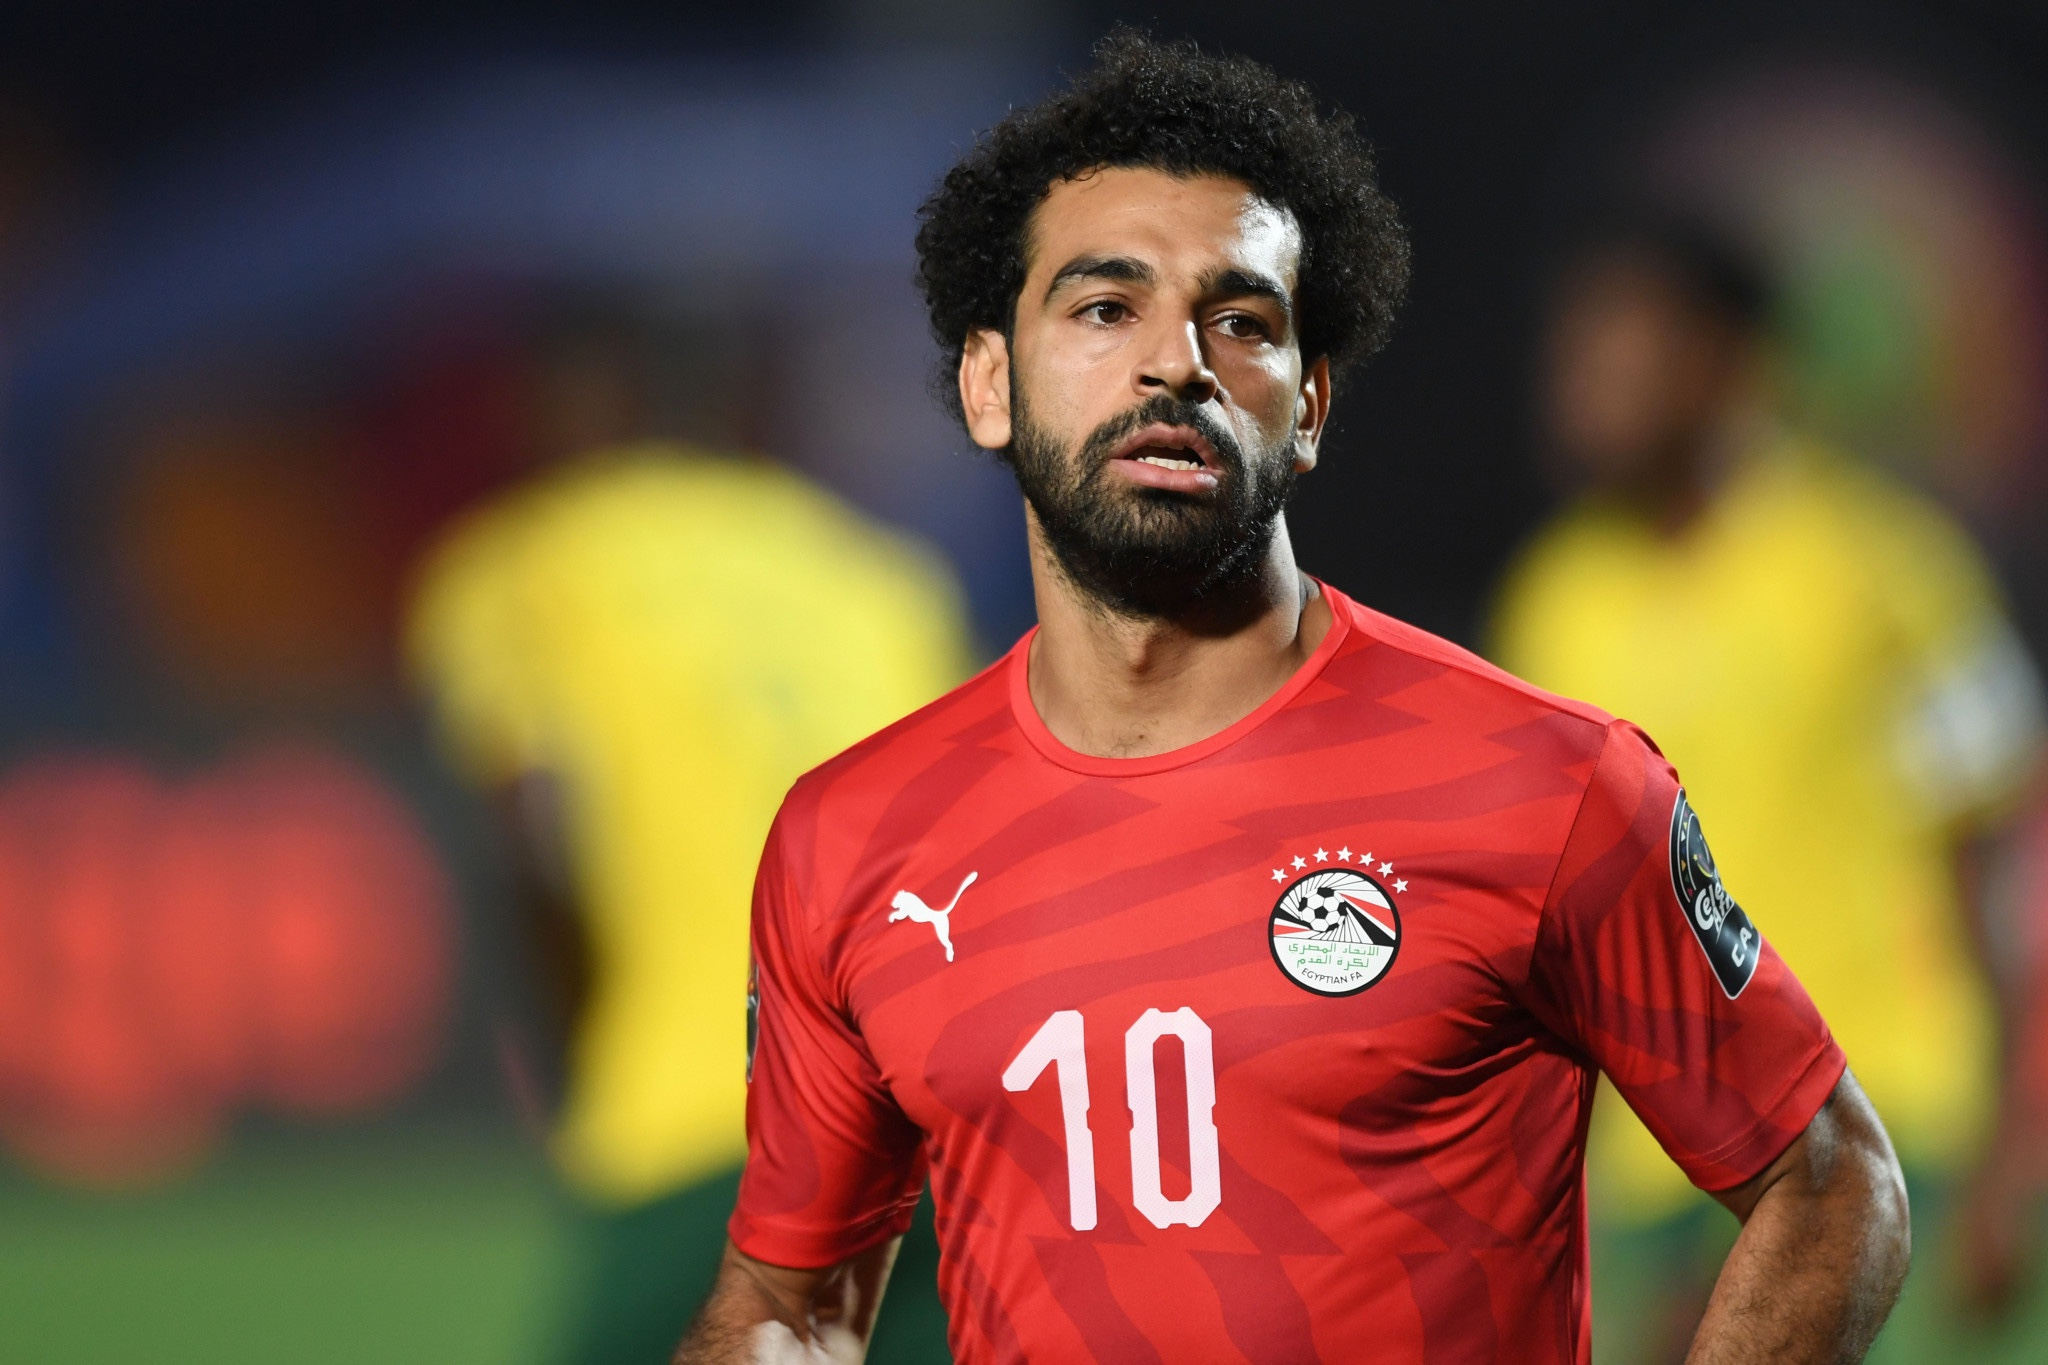 Liverpool striker, Mohamed Salah confirmed as new captain of the Egyptian national team